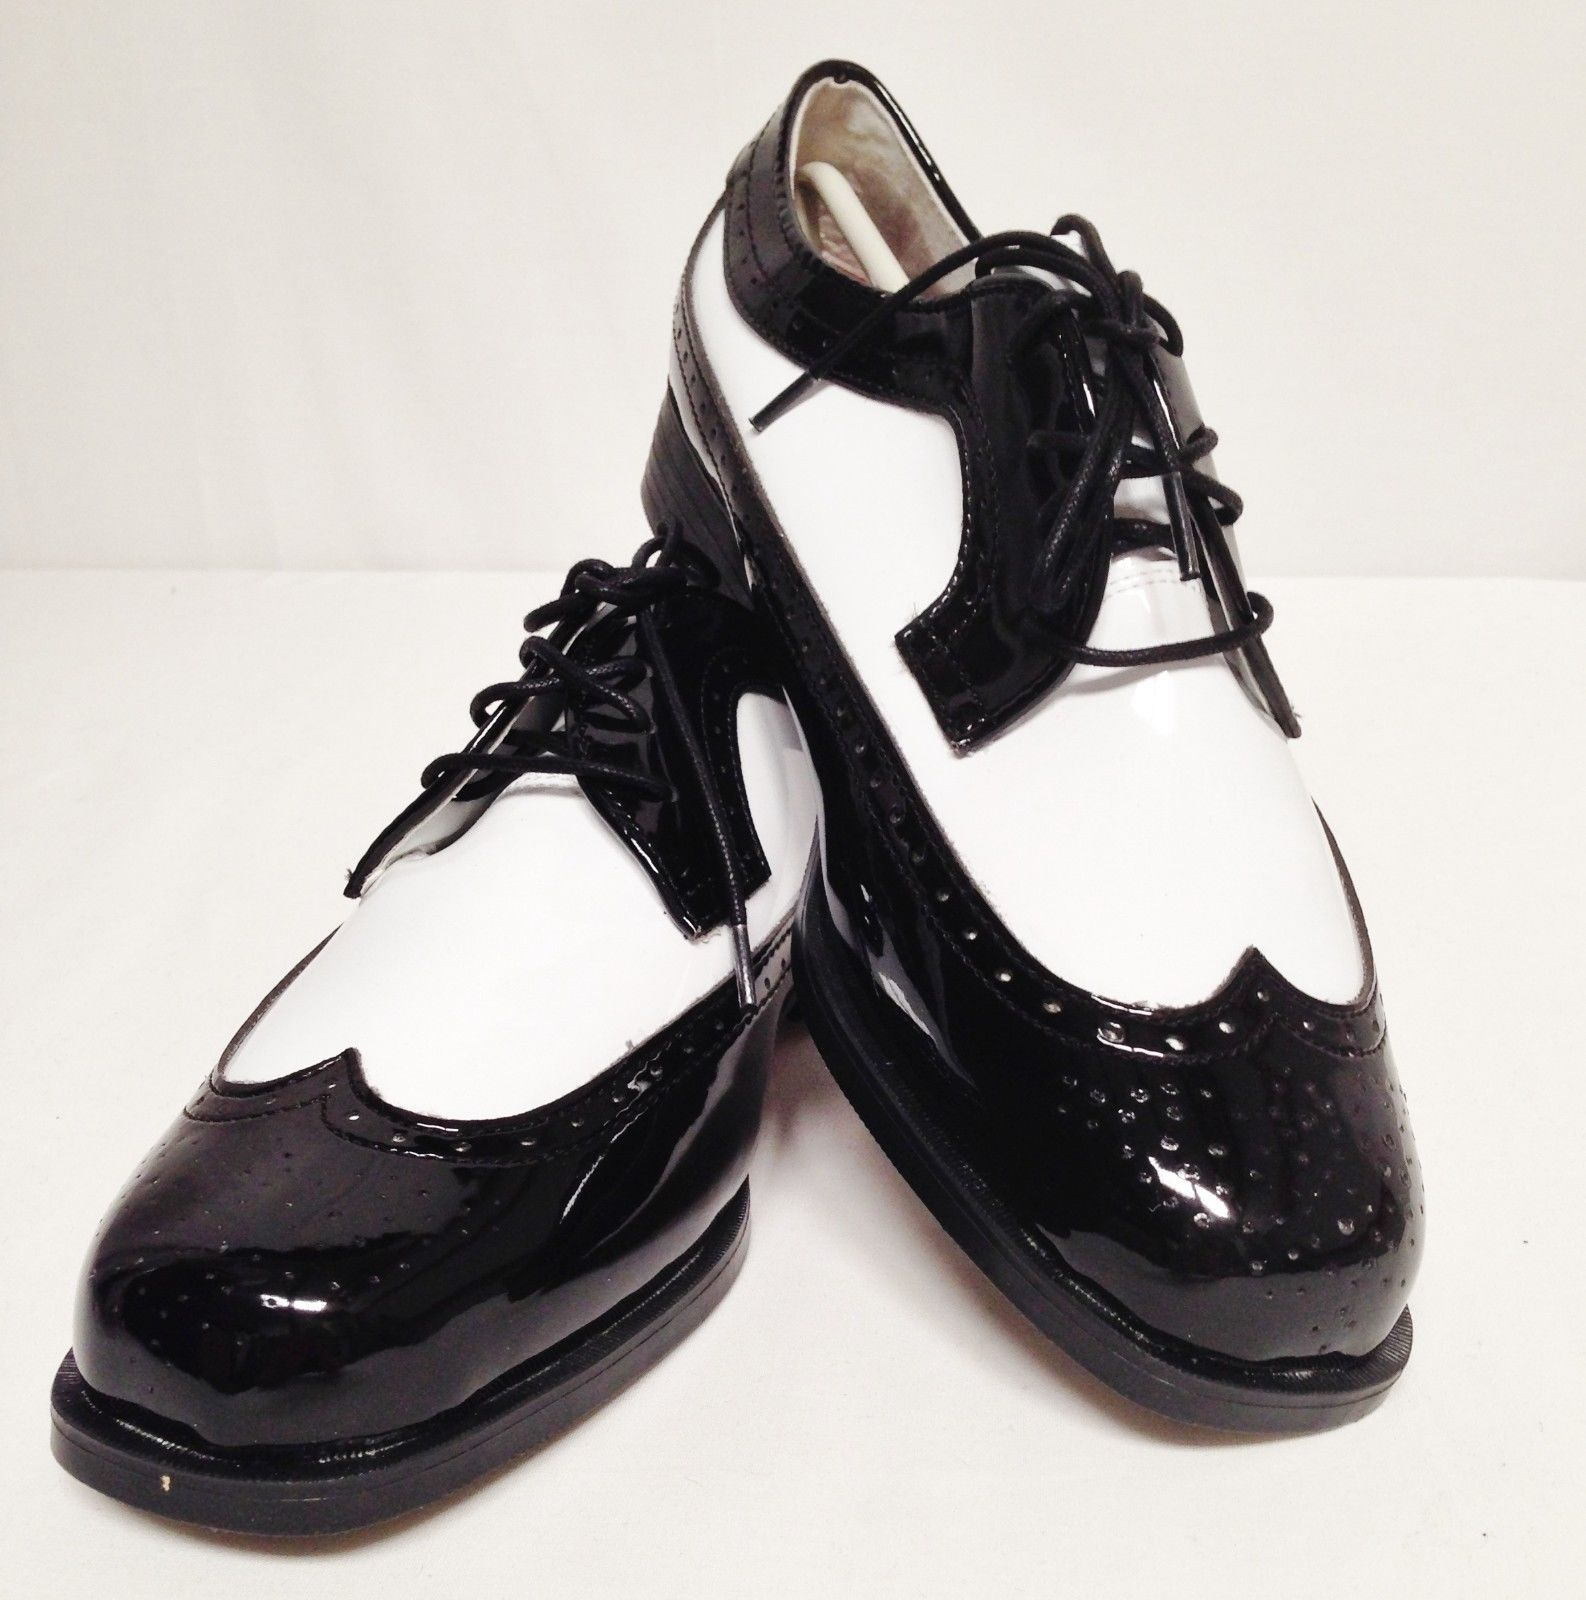 6 M New Mens Black White Wing Tip Tuxedo Dress Shoes Two Tone Zoot Jazz Swing Black And White Man Tuxedo Dress Dress Shoes [ 1600 x 1586 Pixel ]